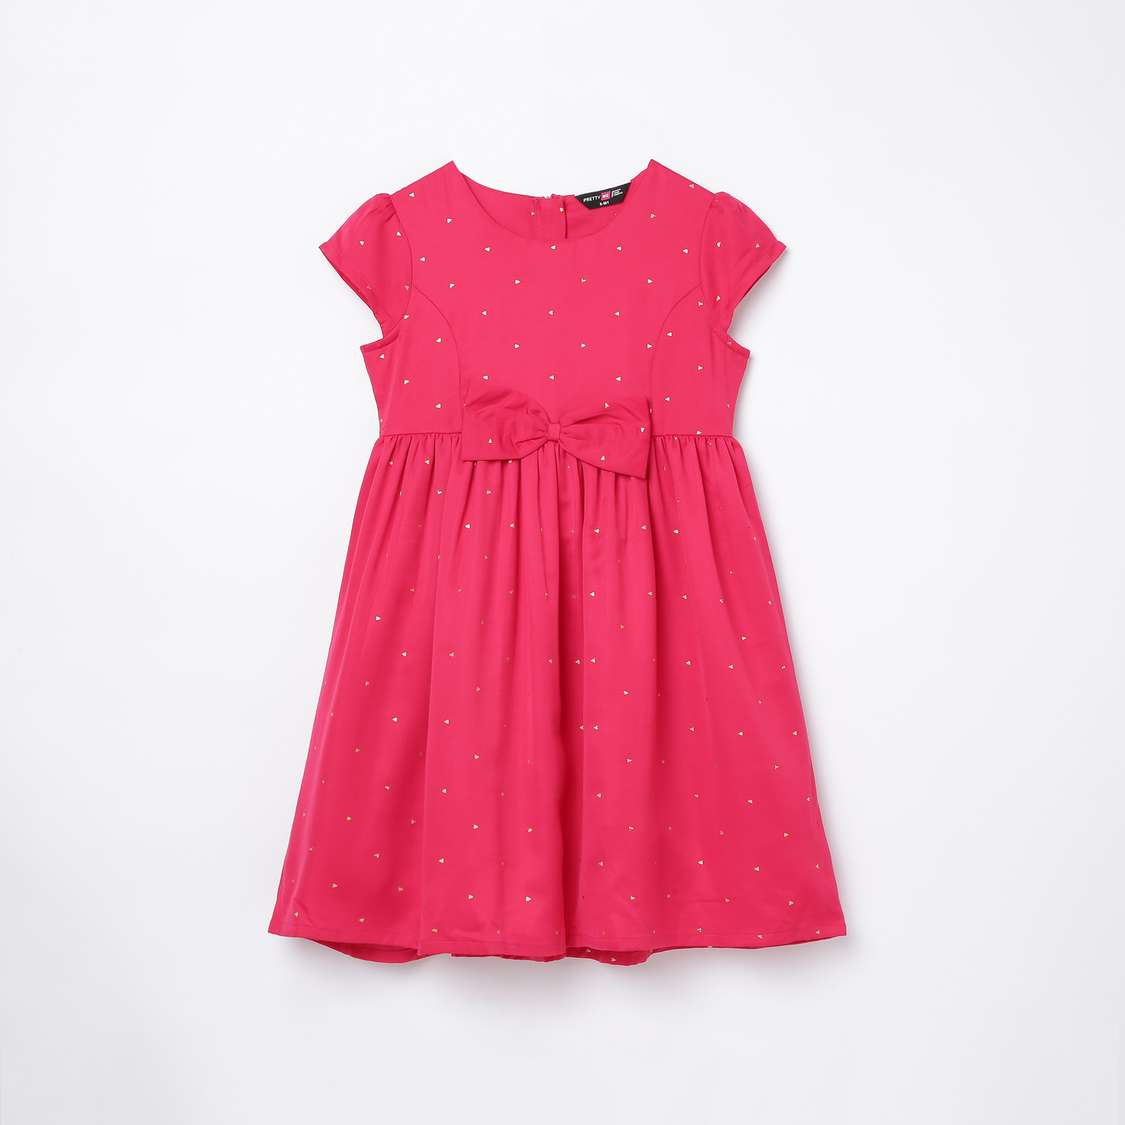 7.PRETTY ME Girls Printed Fit and Flare Dress